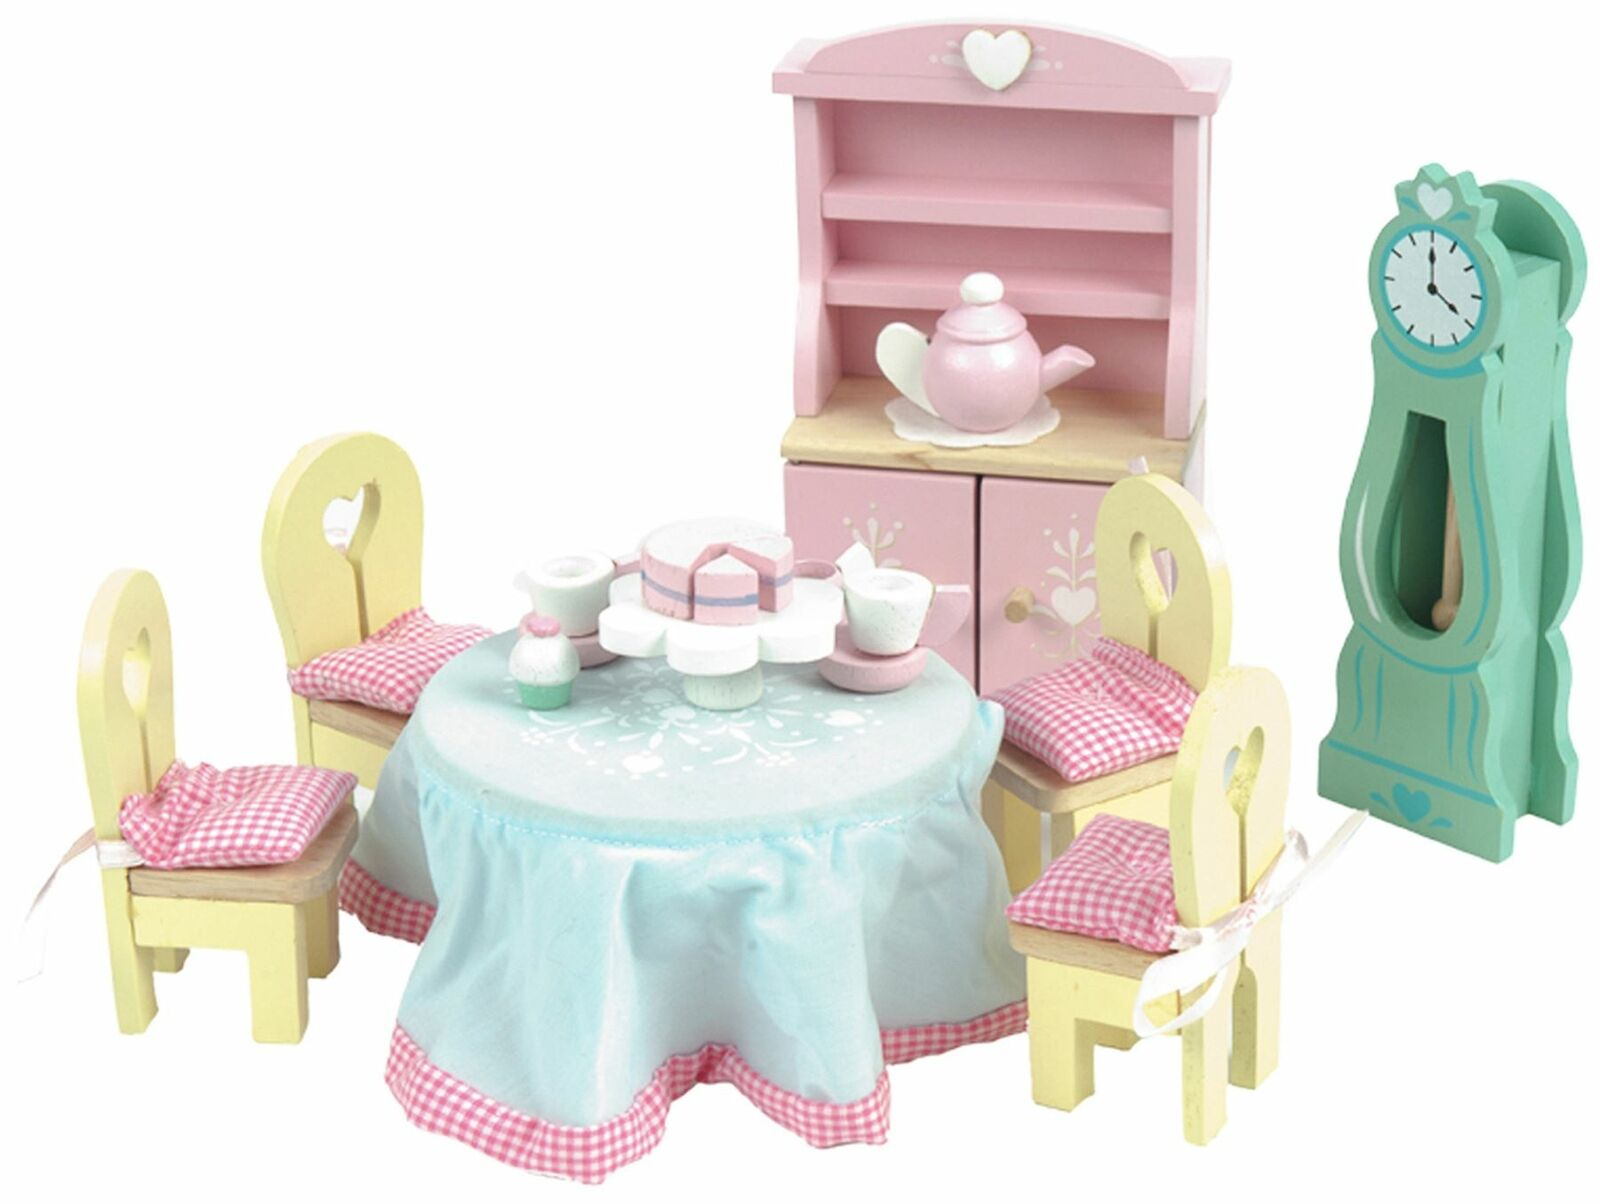 Le Toy Van DOLL HOUSE DAISYLANE DRAWING ROOM Wooden Toy BN